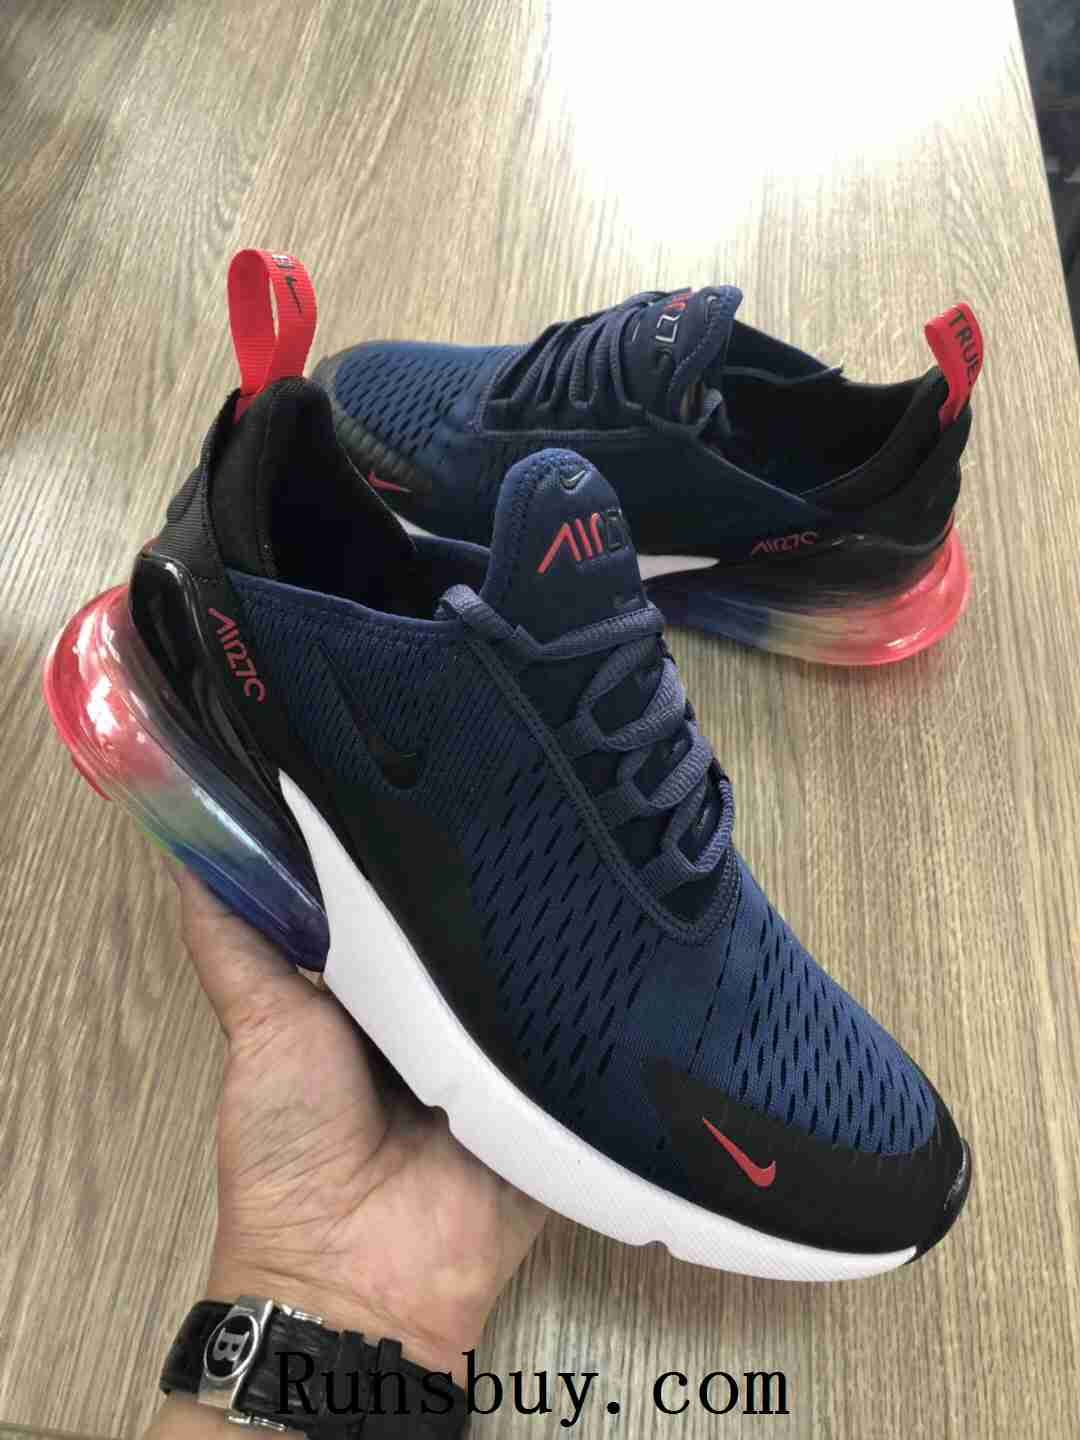 08b418876298 Nike Air Max 270 Betrue Blue Black Rainbow Women Men Running Shoes ...